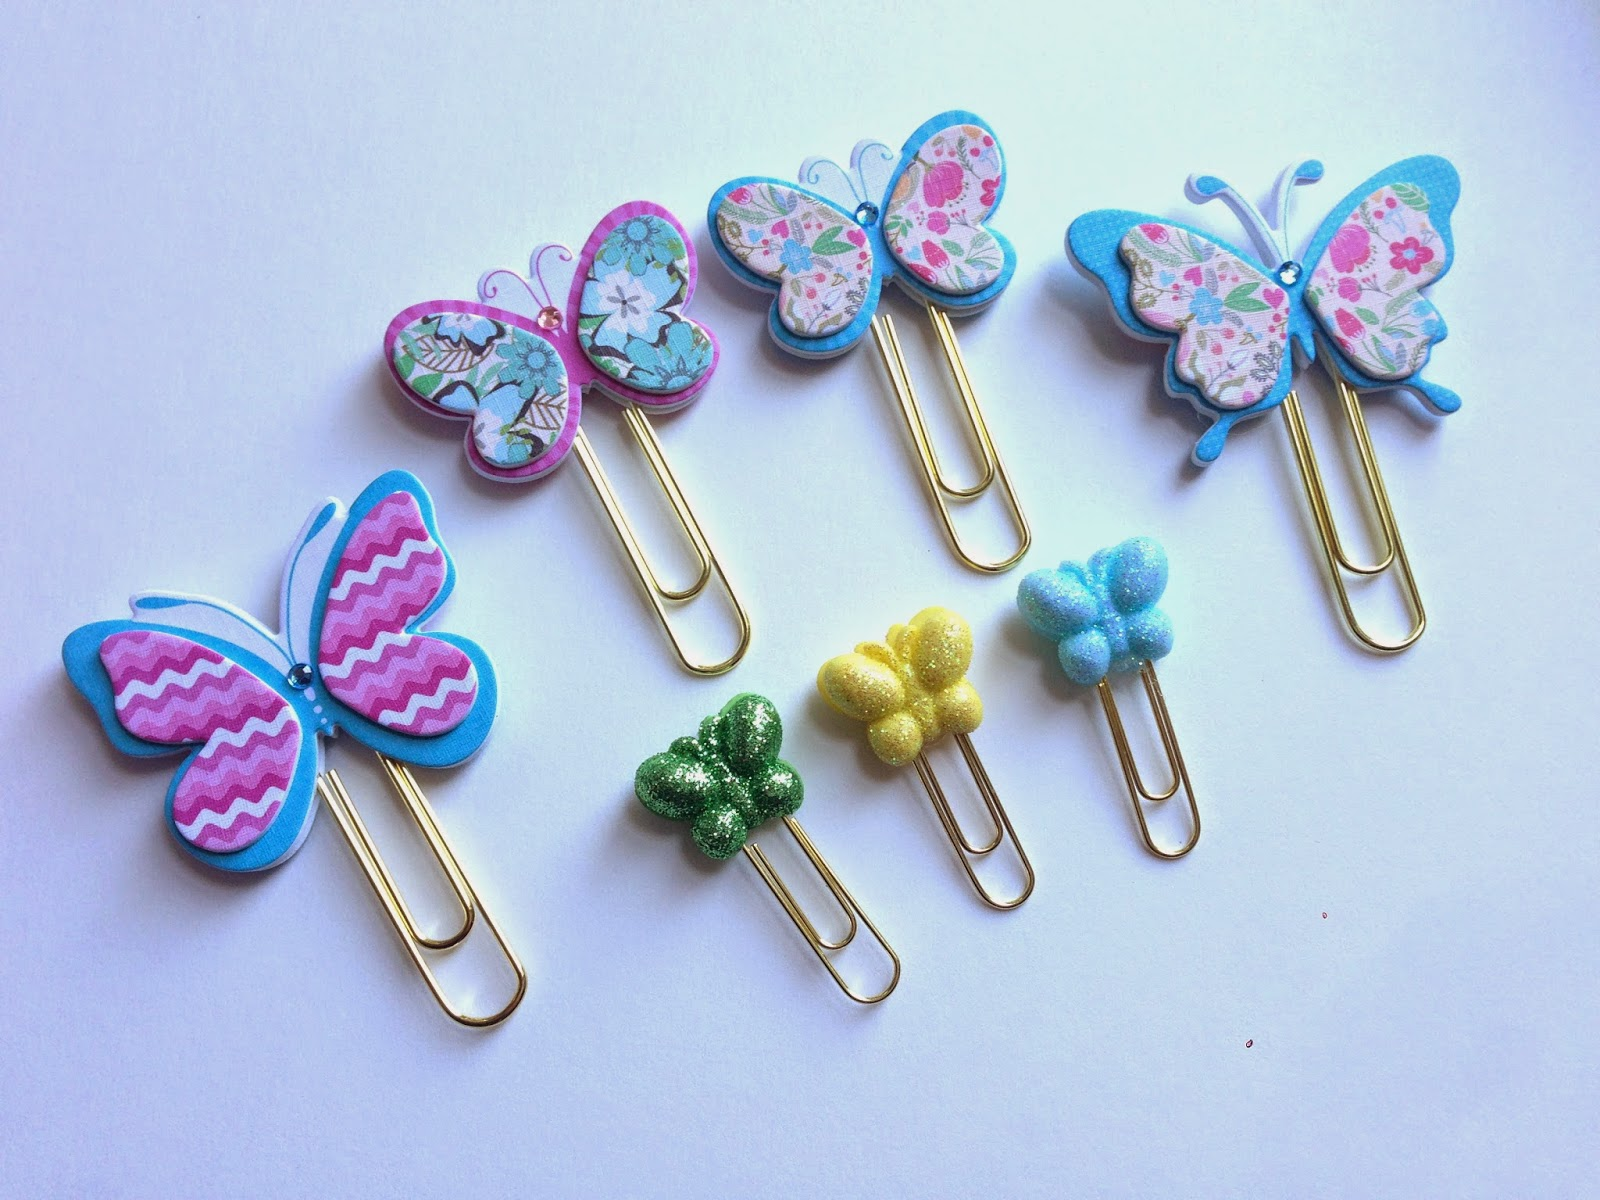 How To: Make Your Own DIY Custom-Shaped Paperclips!